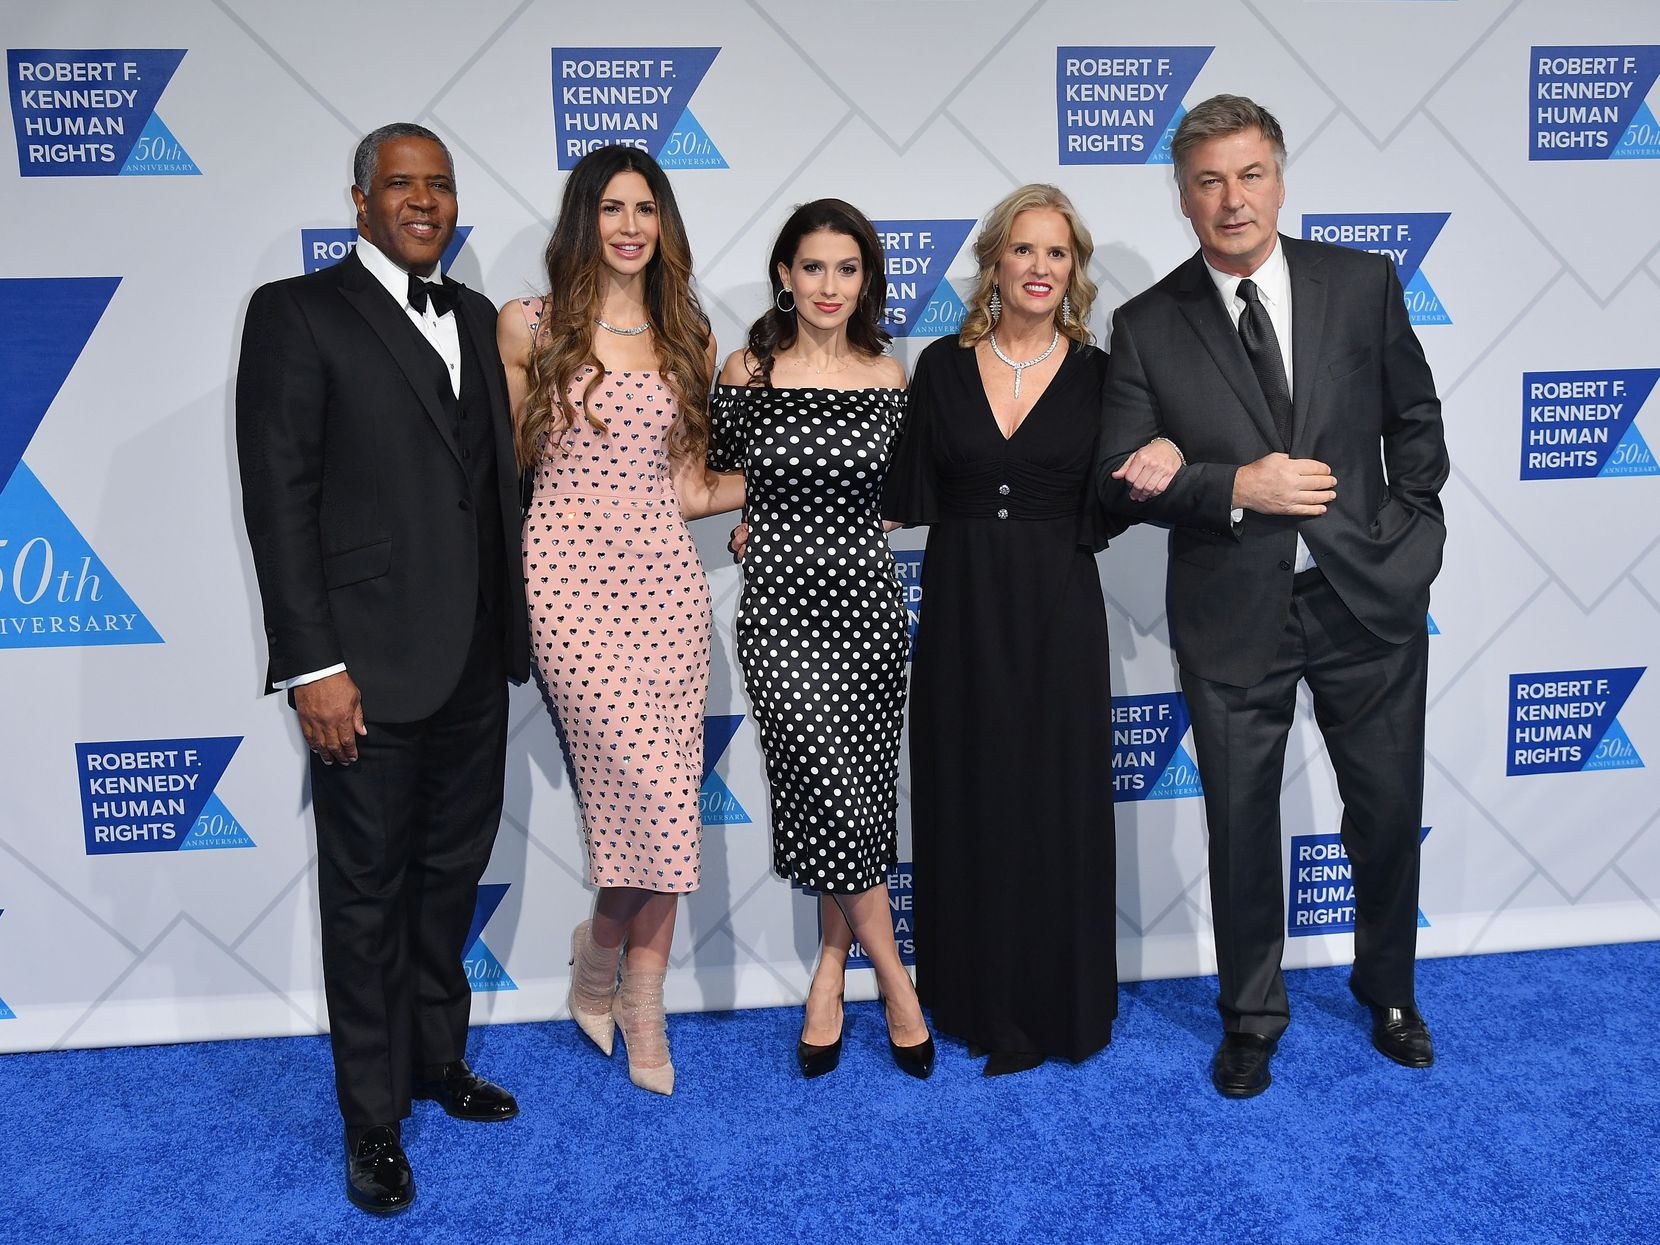 Robert F. Smith (left), his wife model Hope Dworaczyk, Hilaria Baldwin, Human Rights activist Kerry Kennedy and actor Alec Baldwin attended the 2018 Robert F. Kennedy Human Rights' Ripple Of Hope Awards at New York Hilton Midtown.